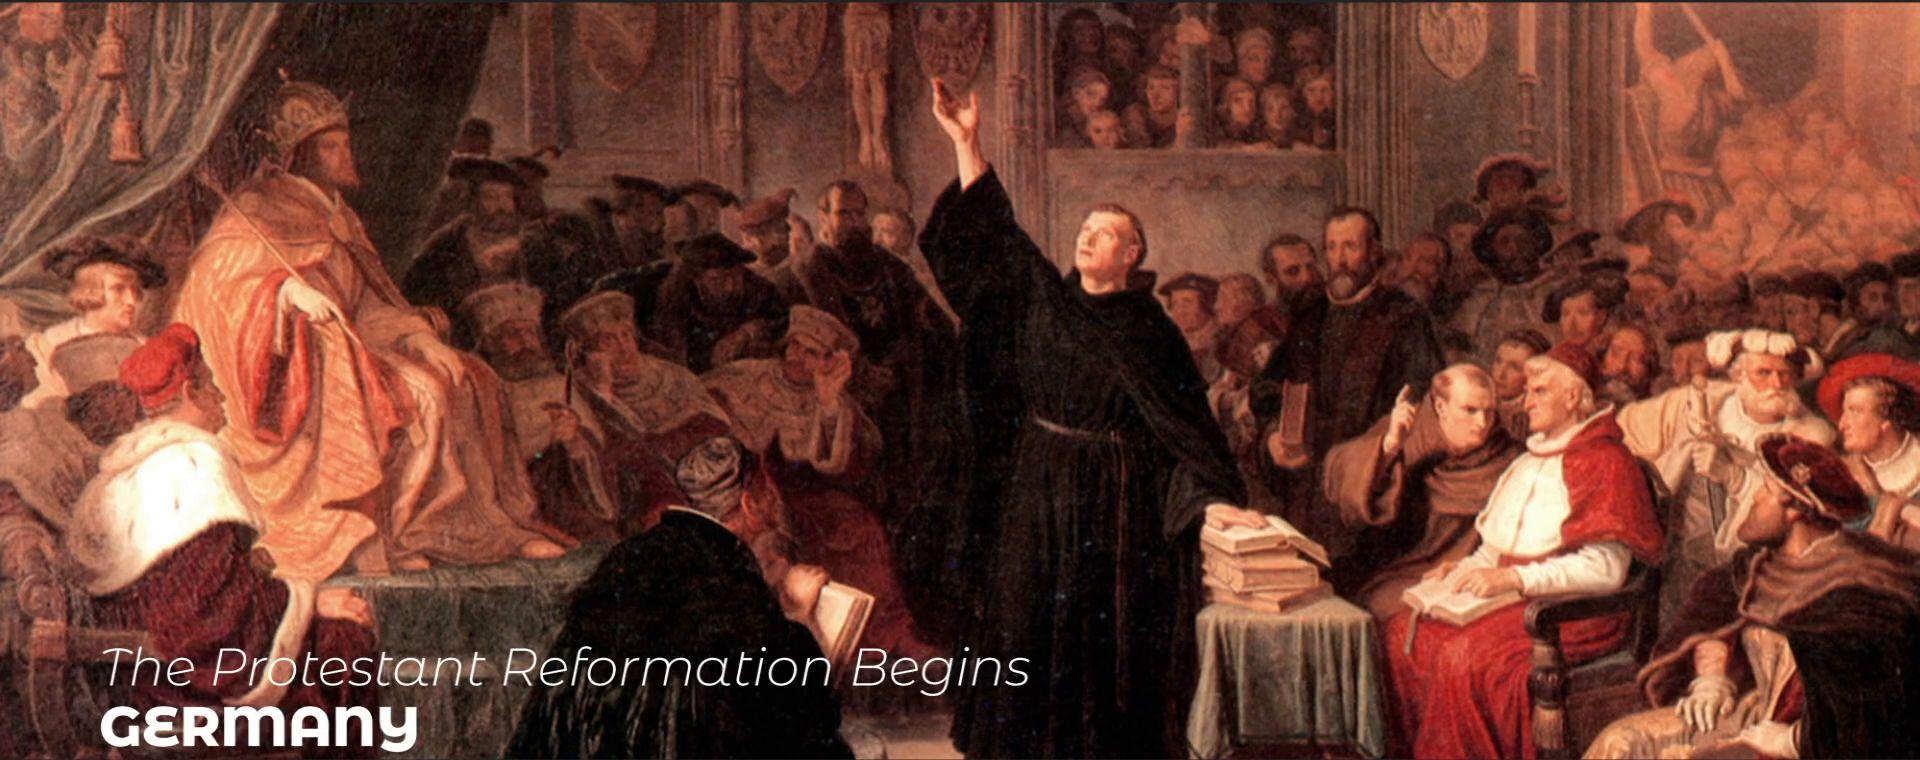 THE PROTESTANT REFORMATION BEGINS